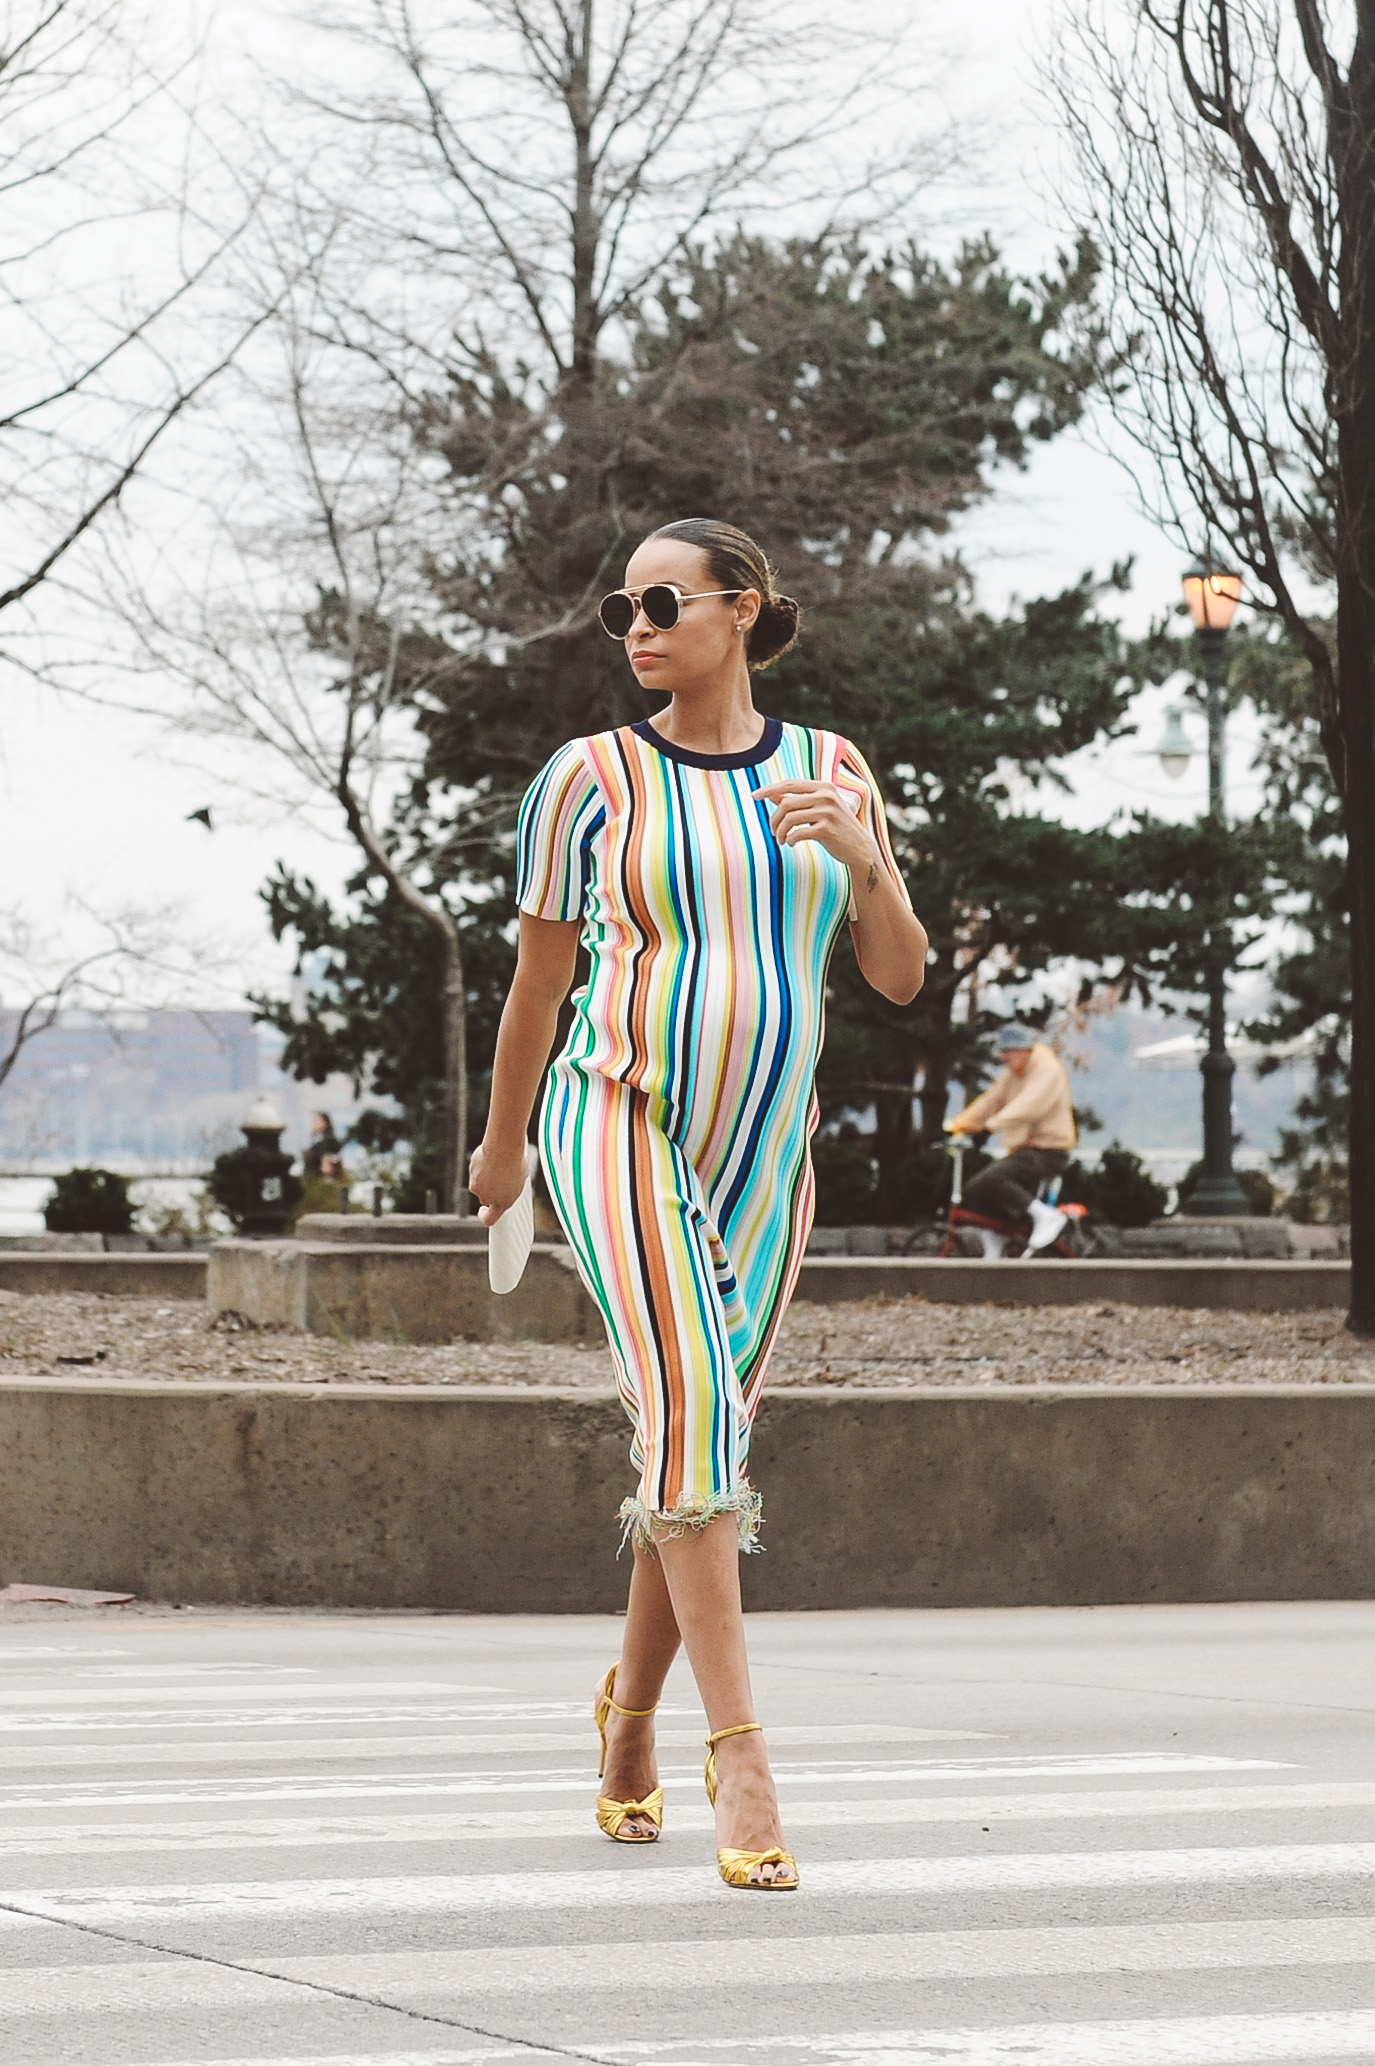 fddfdb9cb7a Lifestyle Blogger Sai De Silva Shows Pregnancy at 9 months 36 weeks in a  stripe Milly Dress3